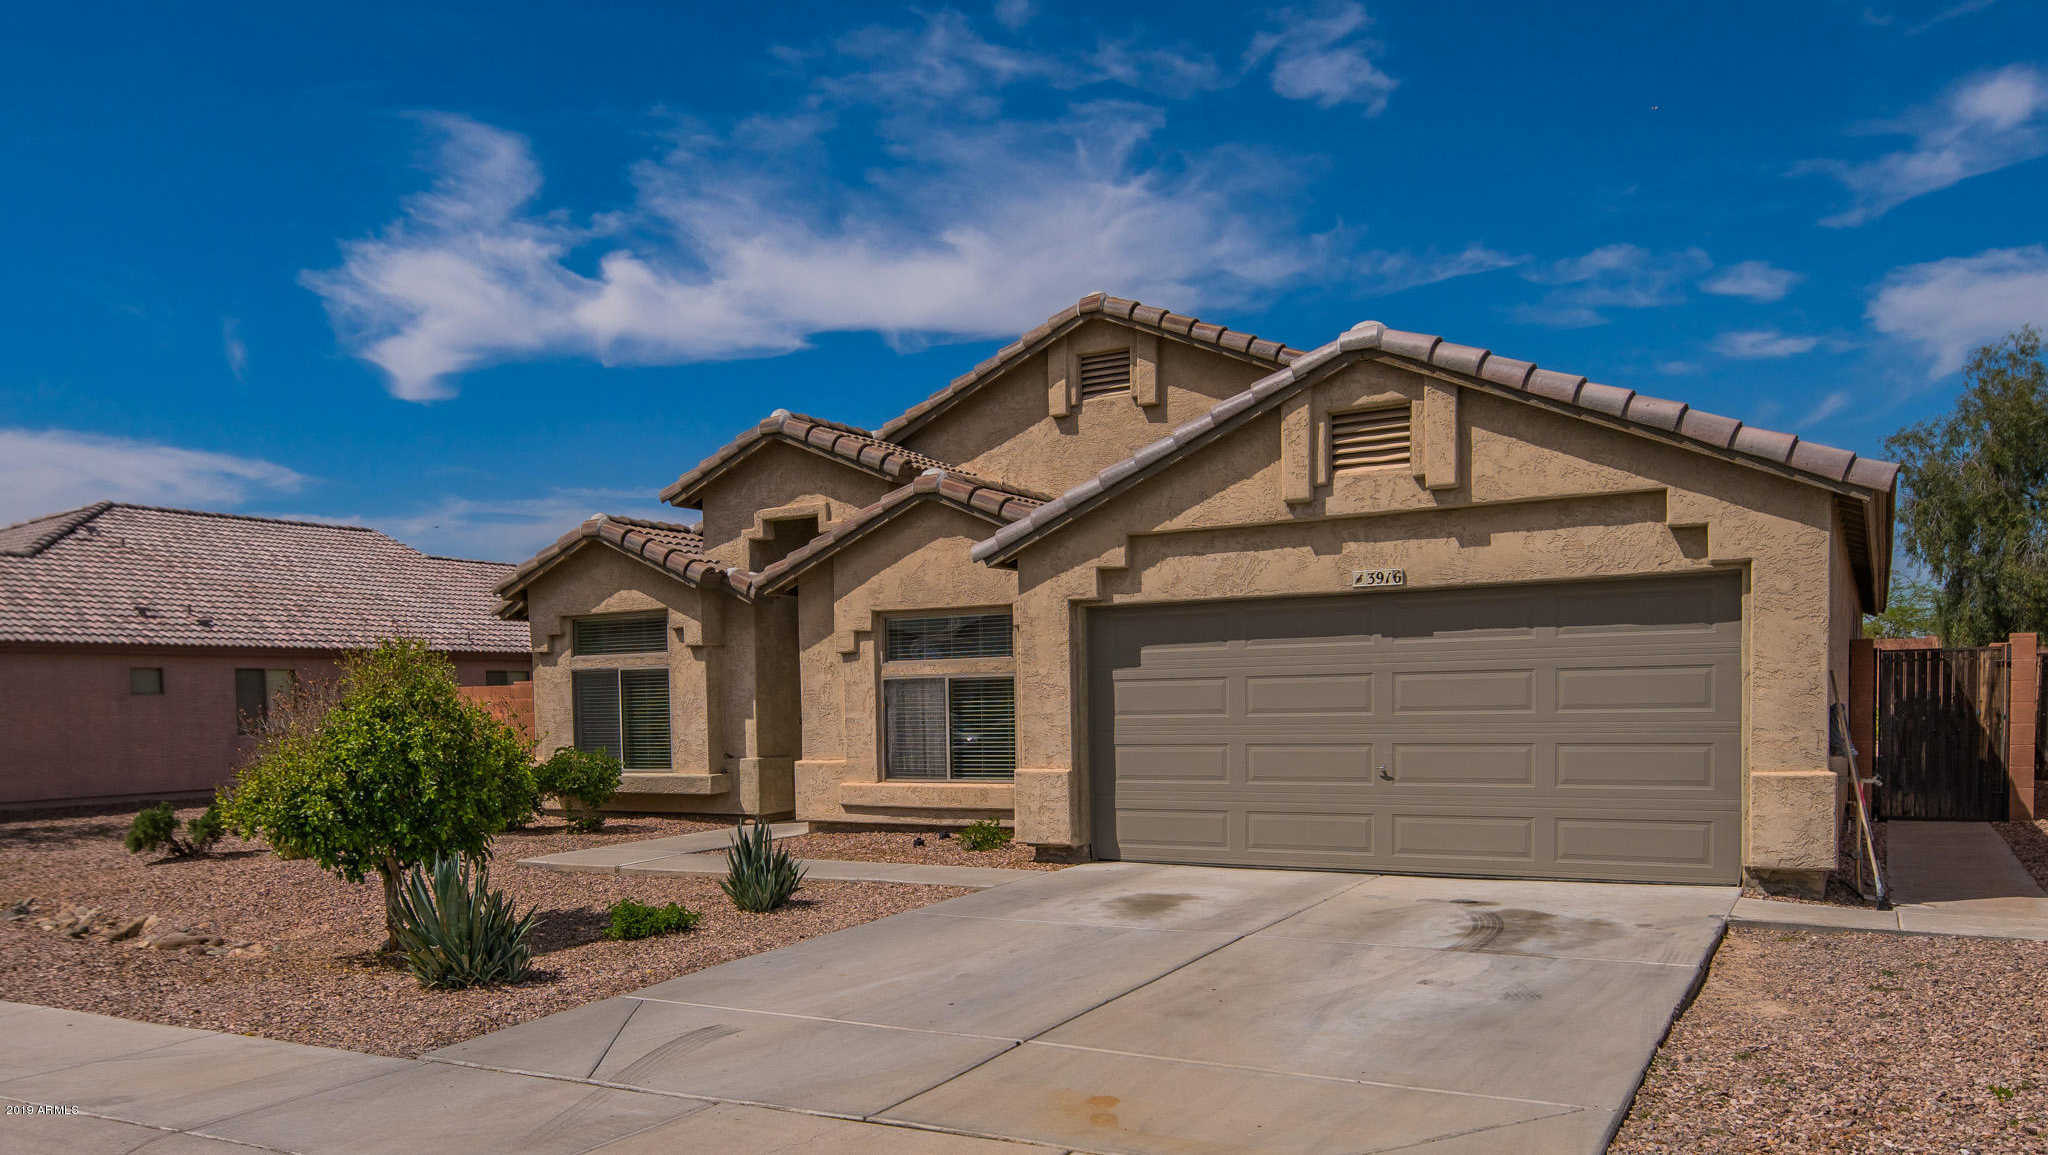 $315,000 - 4Br/2Ba - Home for Sale in Sunset Trails 3, Glendale